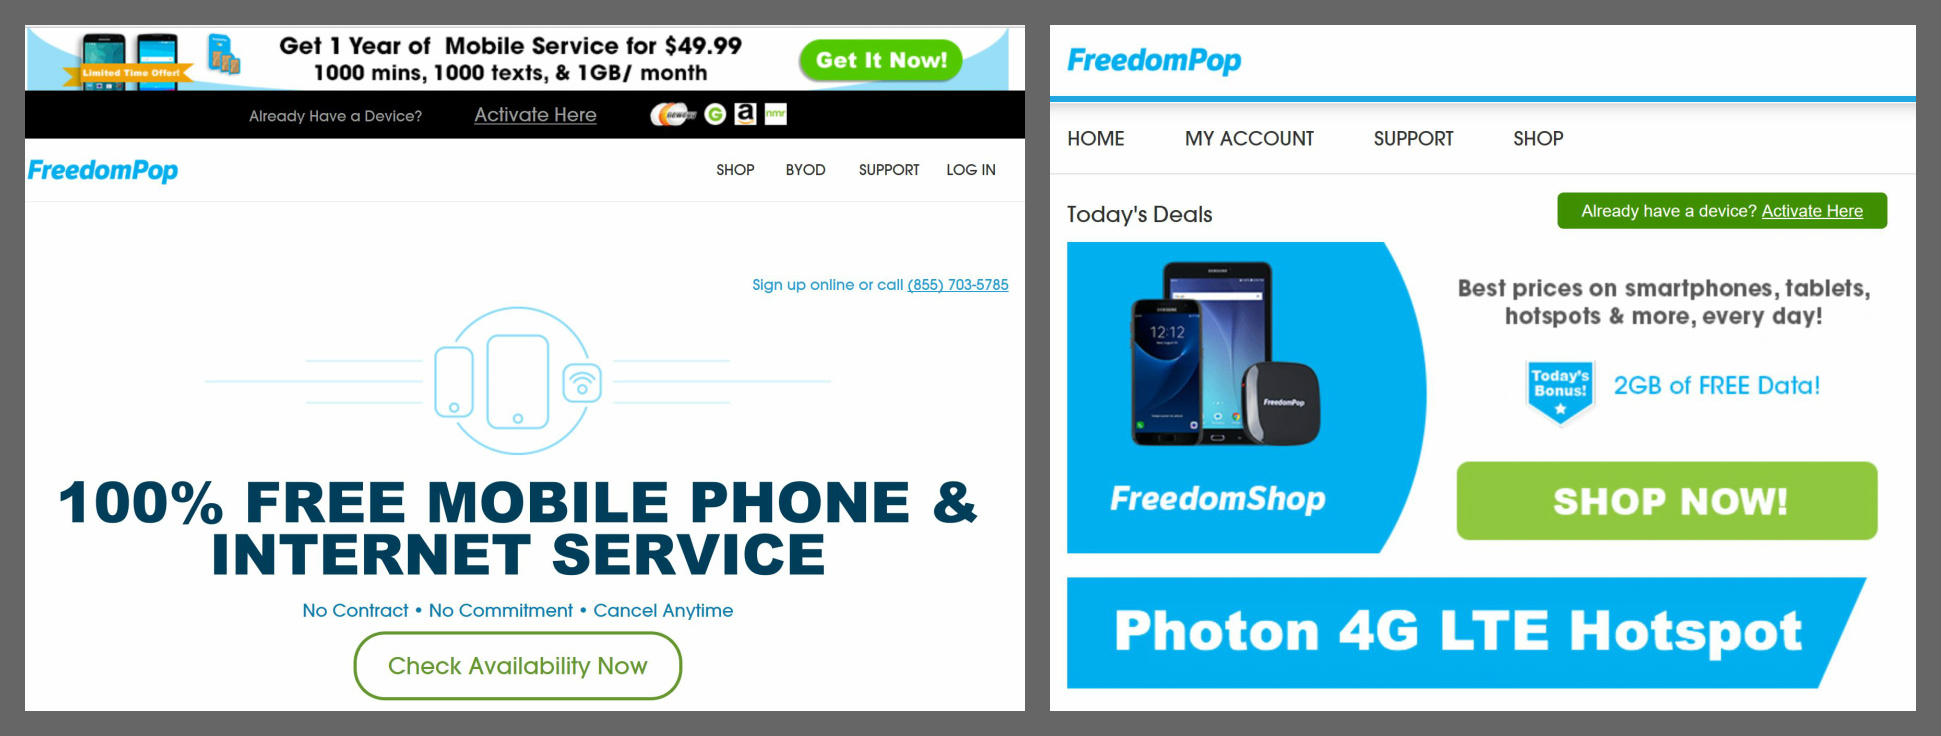 freedompop-before-and-after